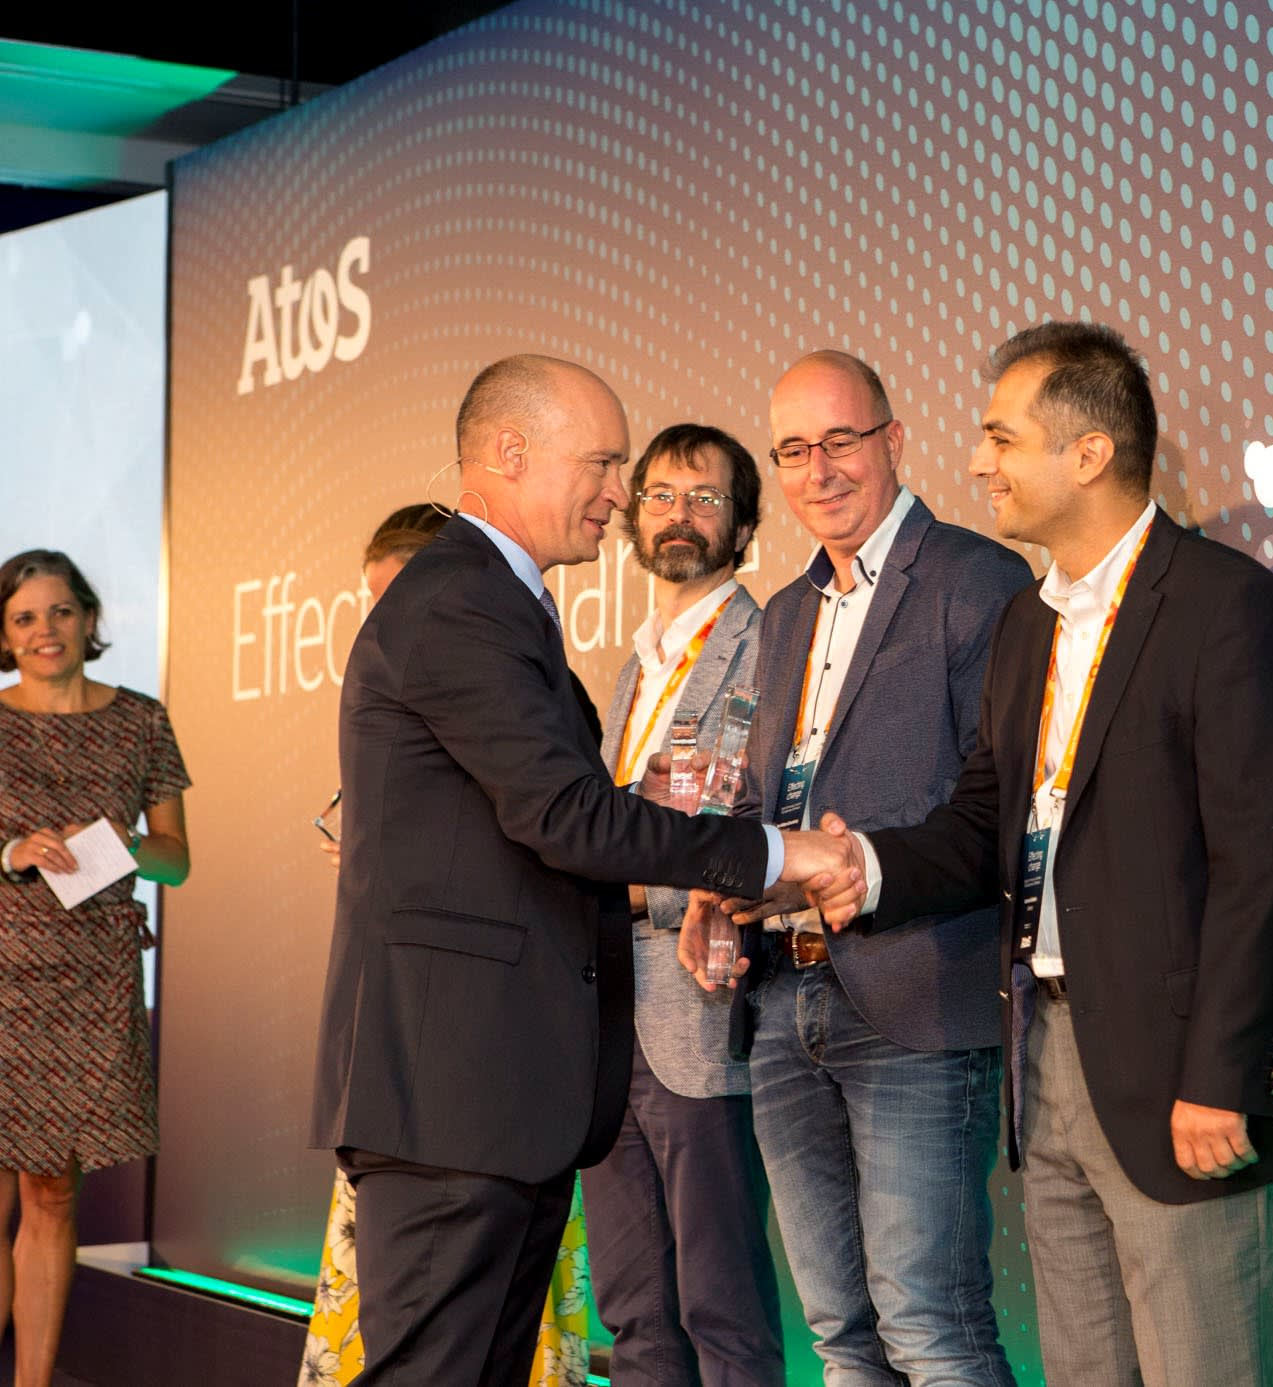 Receiving the 2019 Excellence Winner award from Philippe Mareine (SEVP, Chief Digital & Transformation Officer, Head of Group HR, CSR and Global Siemens Alliance) for my contribution to Atos Expert Community. Atos Expert Convention 2019, Madrid/Spain